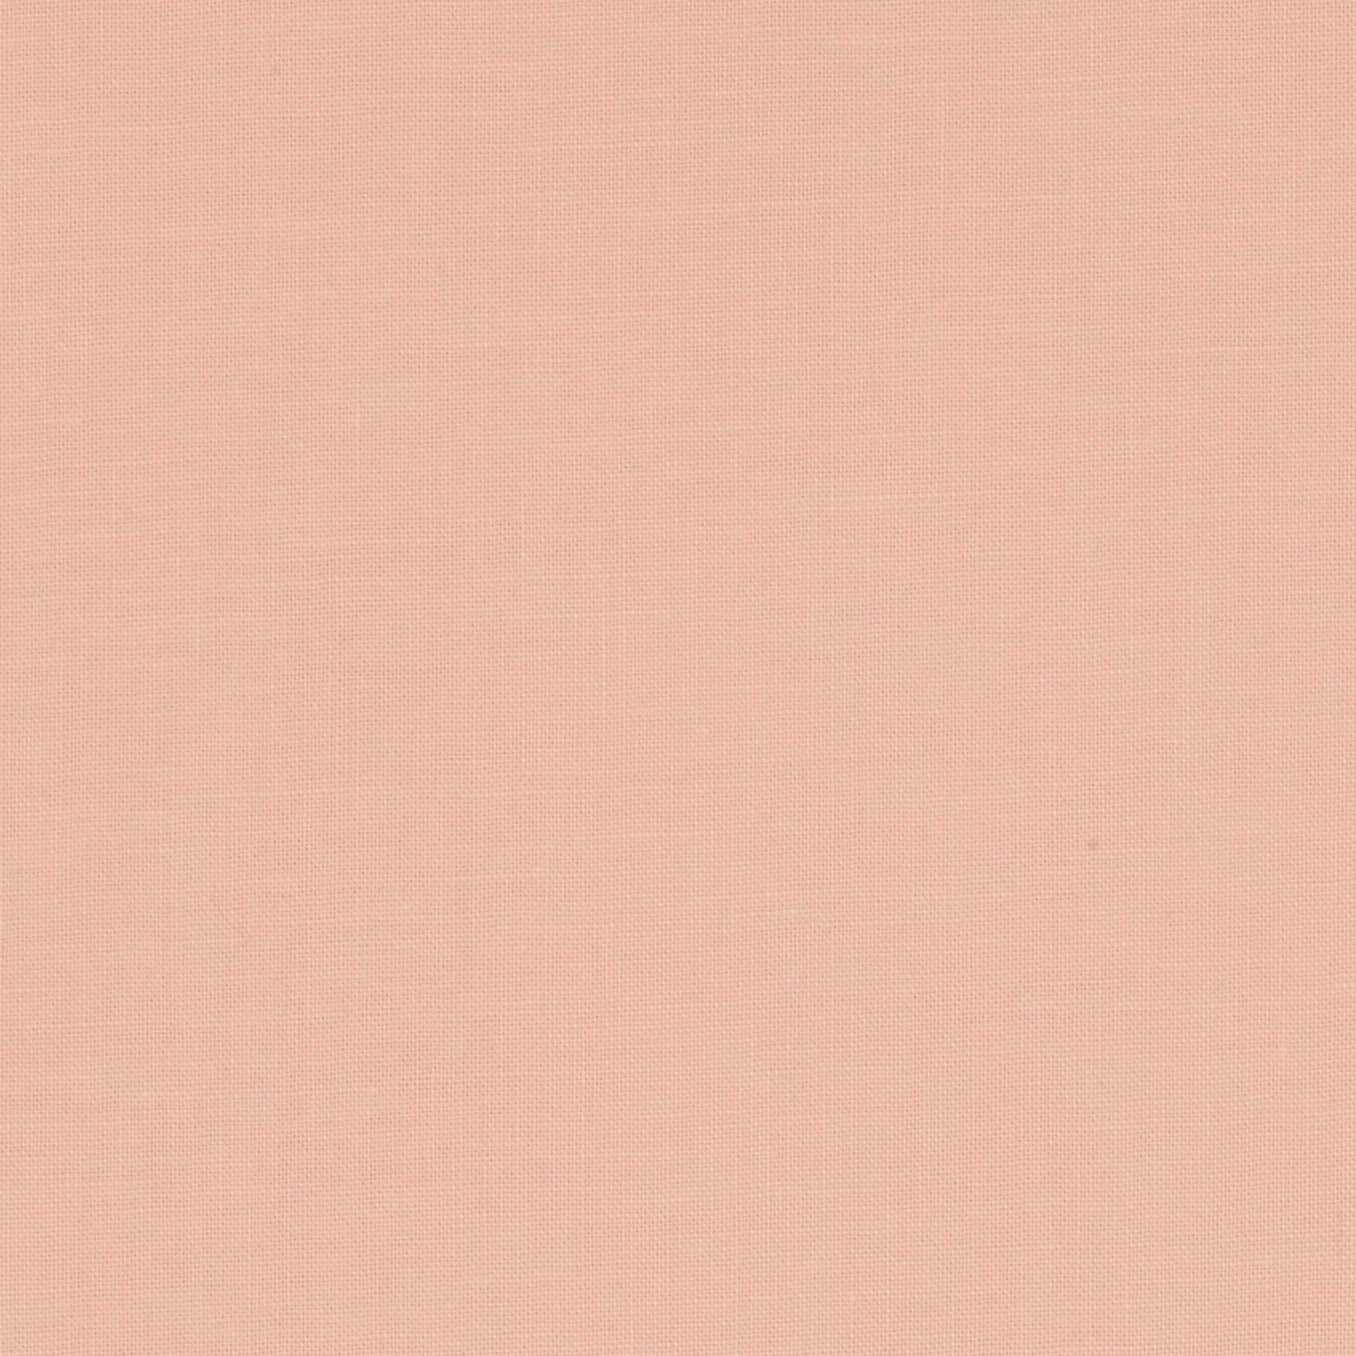 Michael Miller Cotton Couture Broadcloth Blossom Pink Fabric